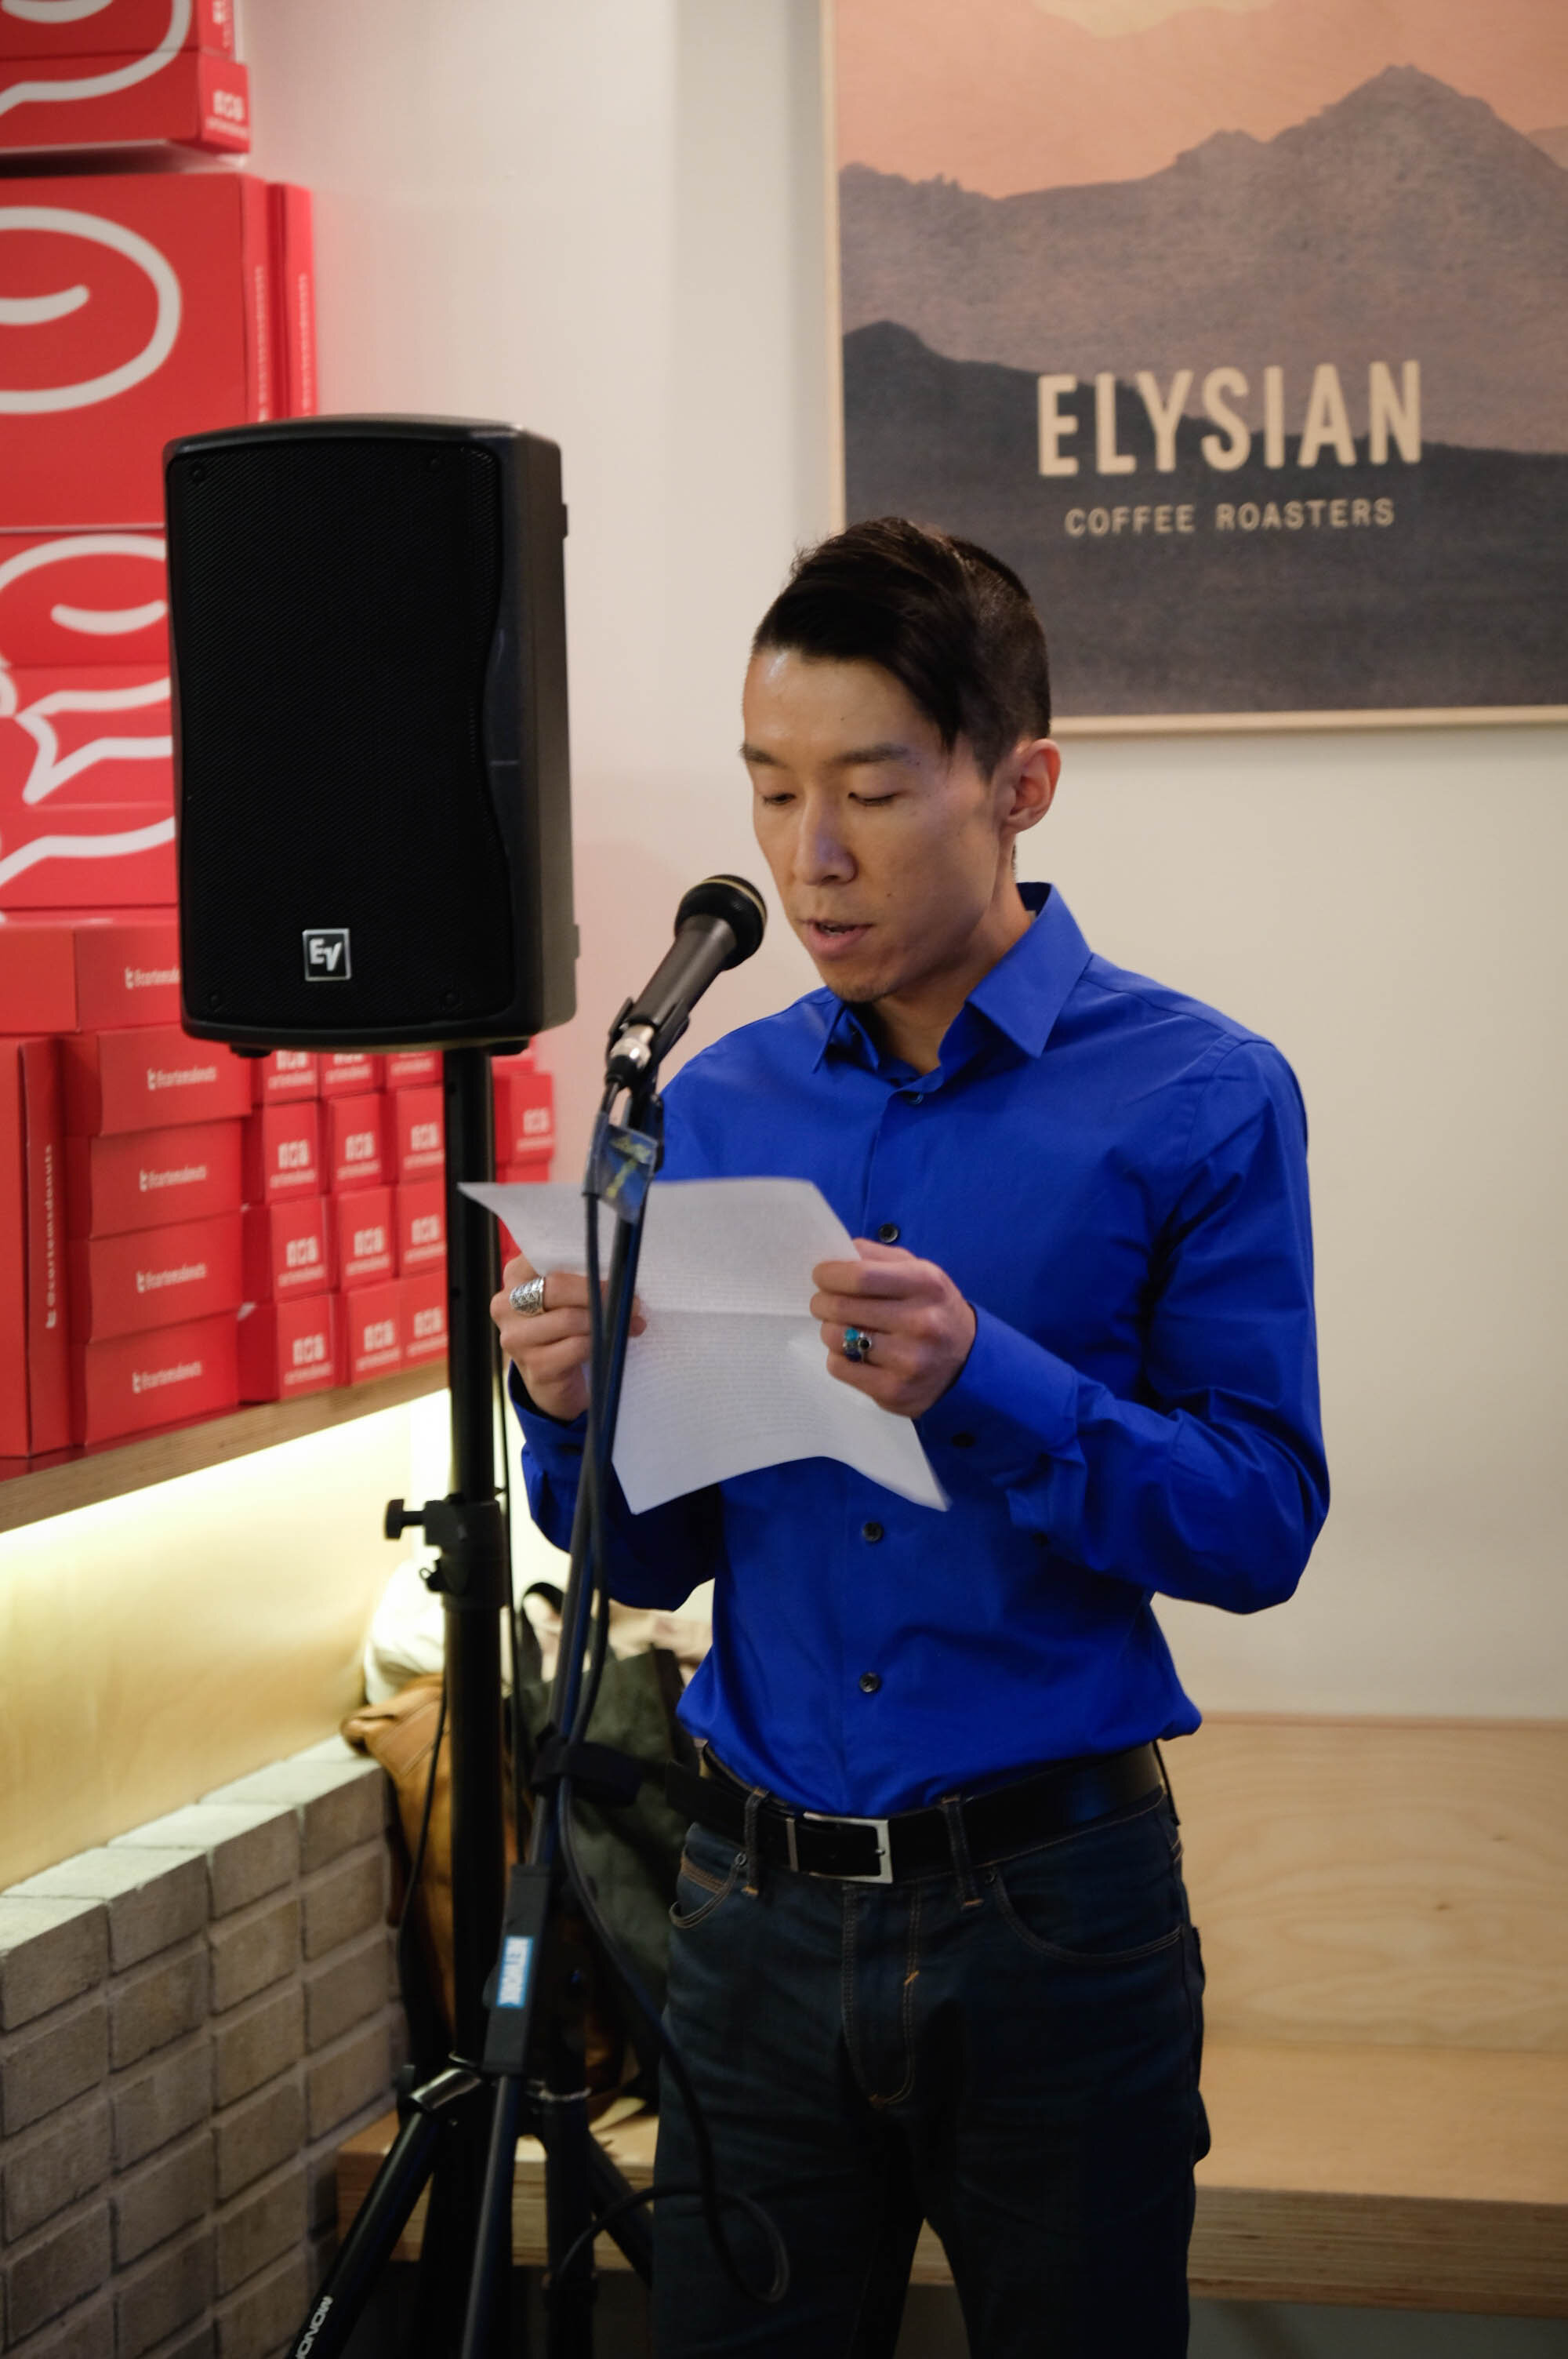 Storyteller Daniel on: his journey from childhood in rural China to present day - an open and earnest love letter to the feminine in his life.